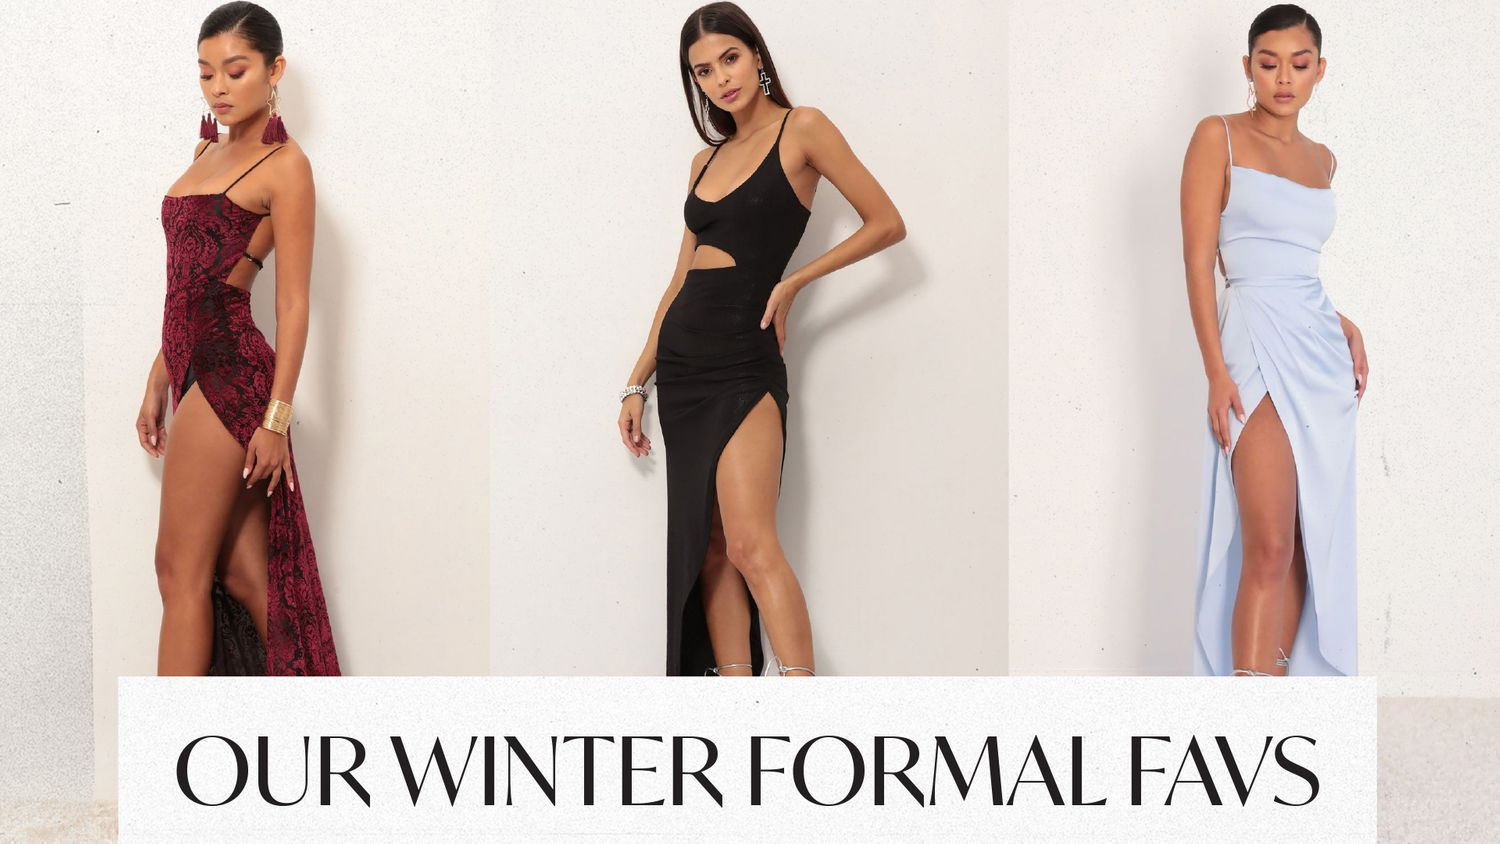 Our Winter Formal Favorites